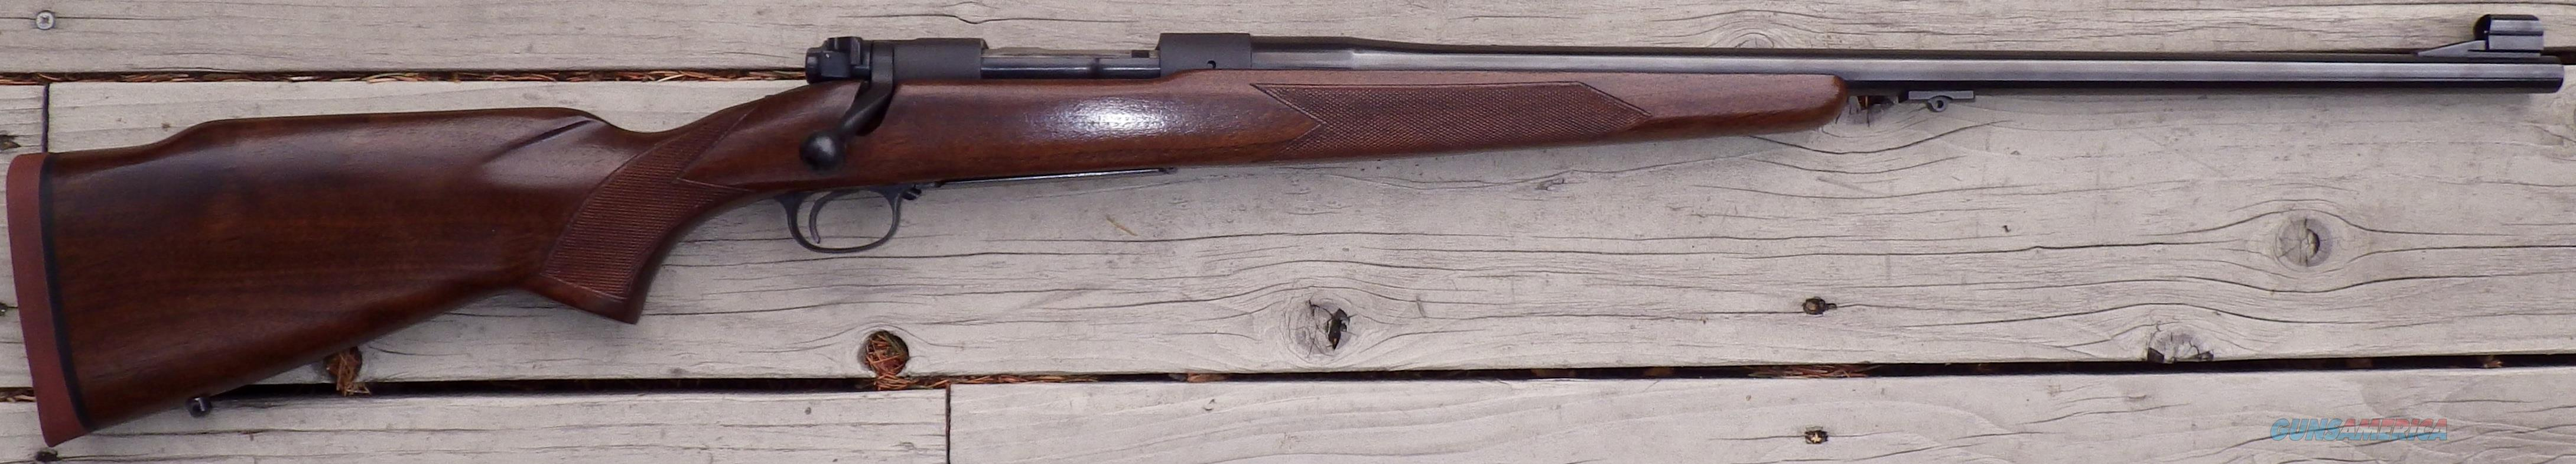 Winchester pre-64 Model 70 .458 Winchester Magnum  Guns > Rifles > Winchester Rifles - Modern Bolt/Auto/Single > Model 70 > Pre-64